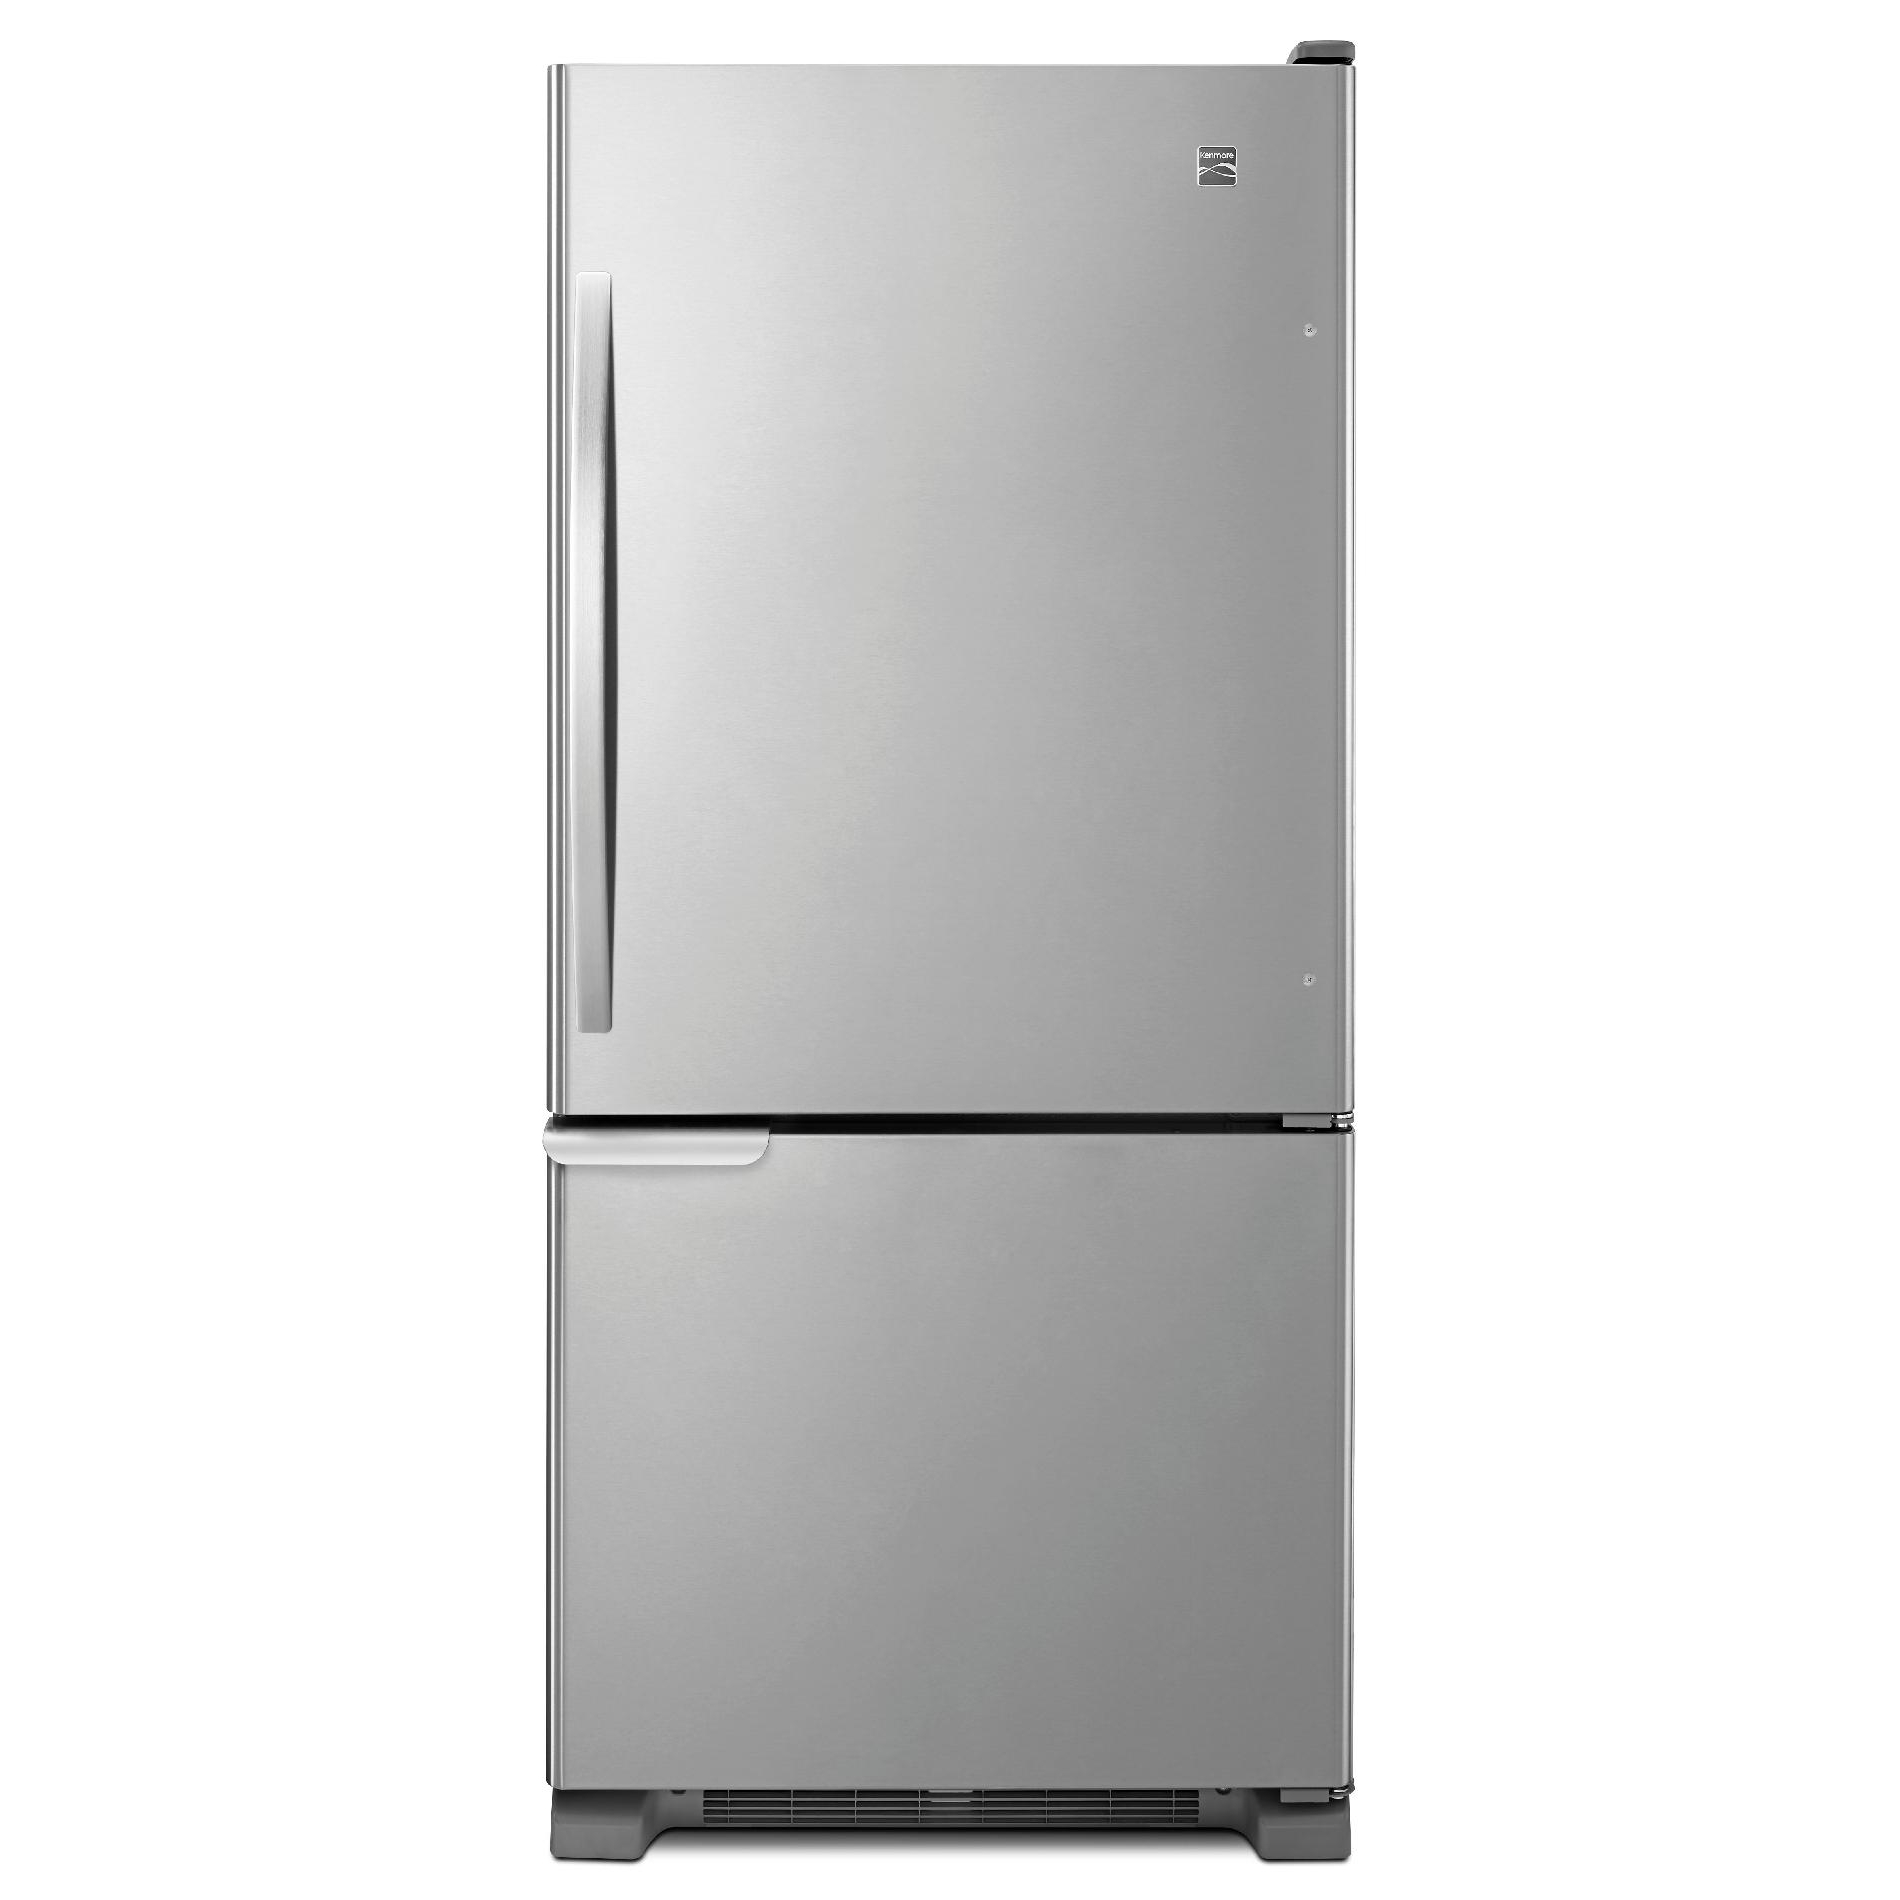 69313-19-cu-ft-Bottom-Freezer-Refrigerator-Stainless-Steel